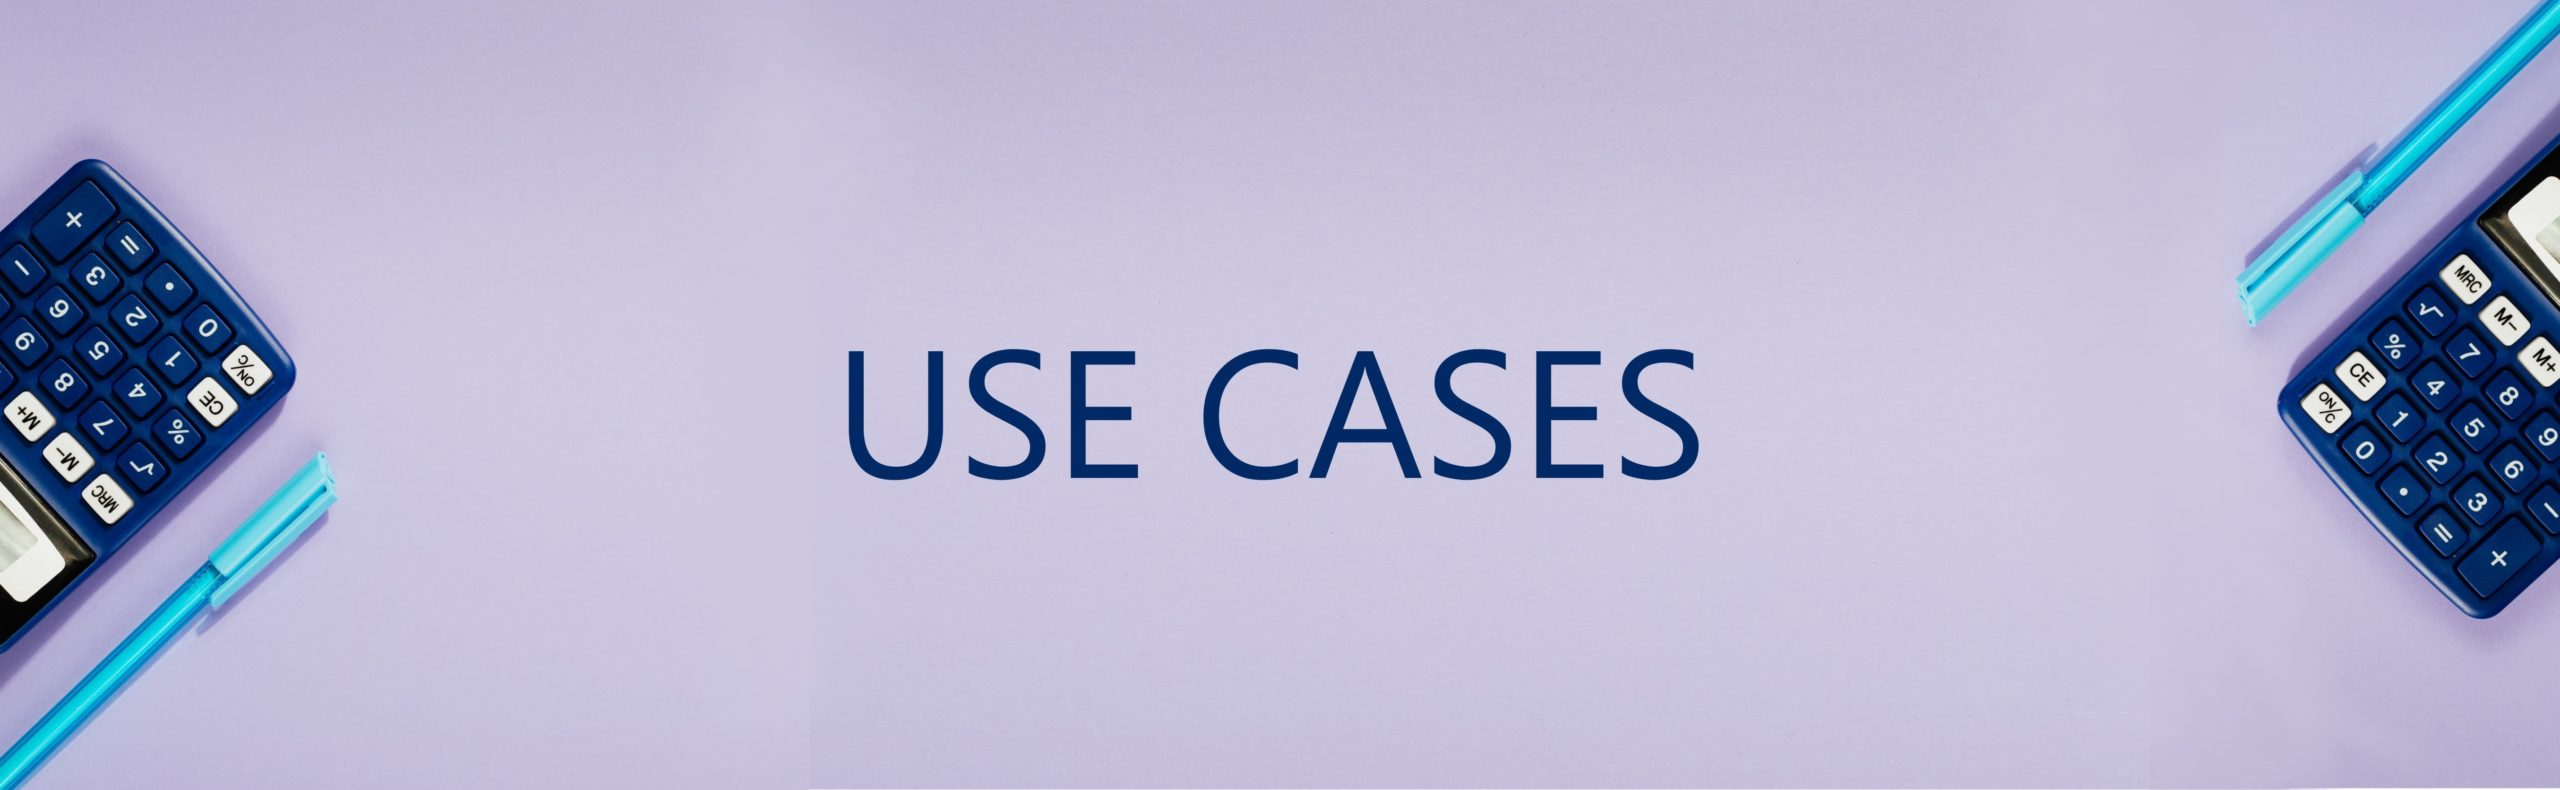 Use Cases Banner